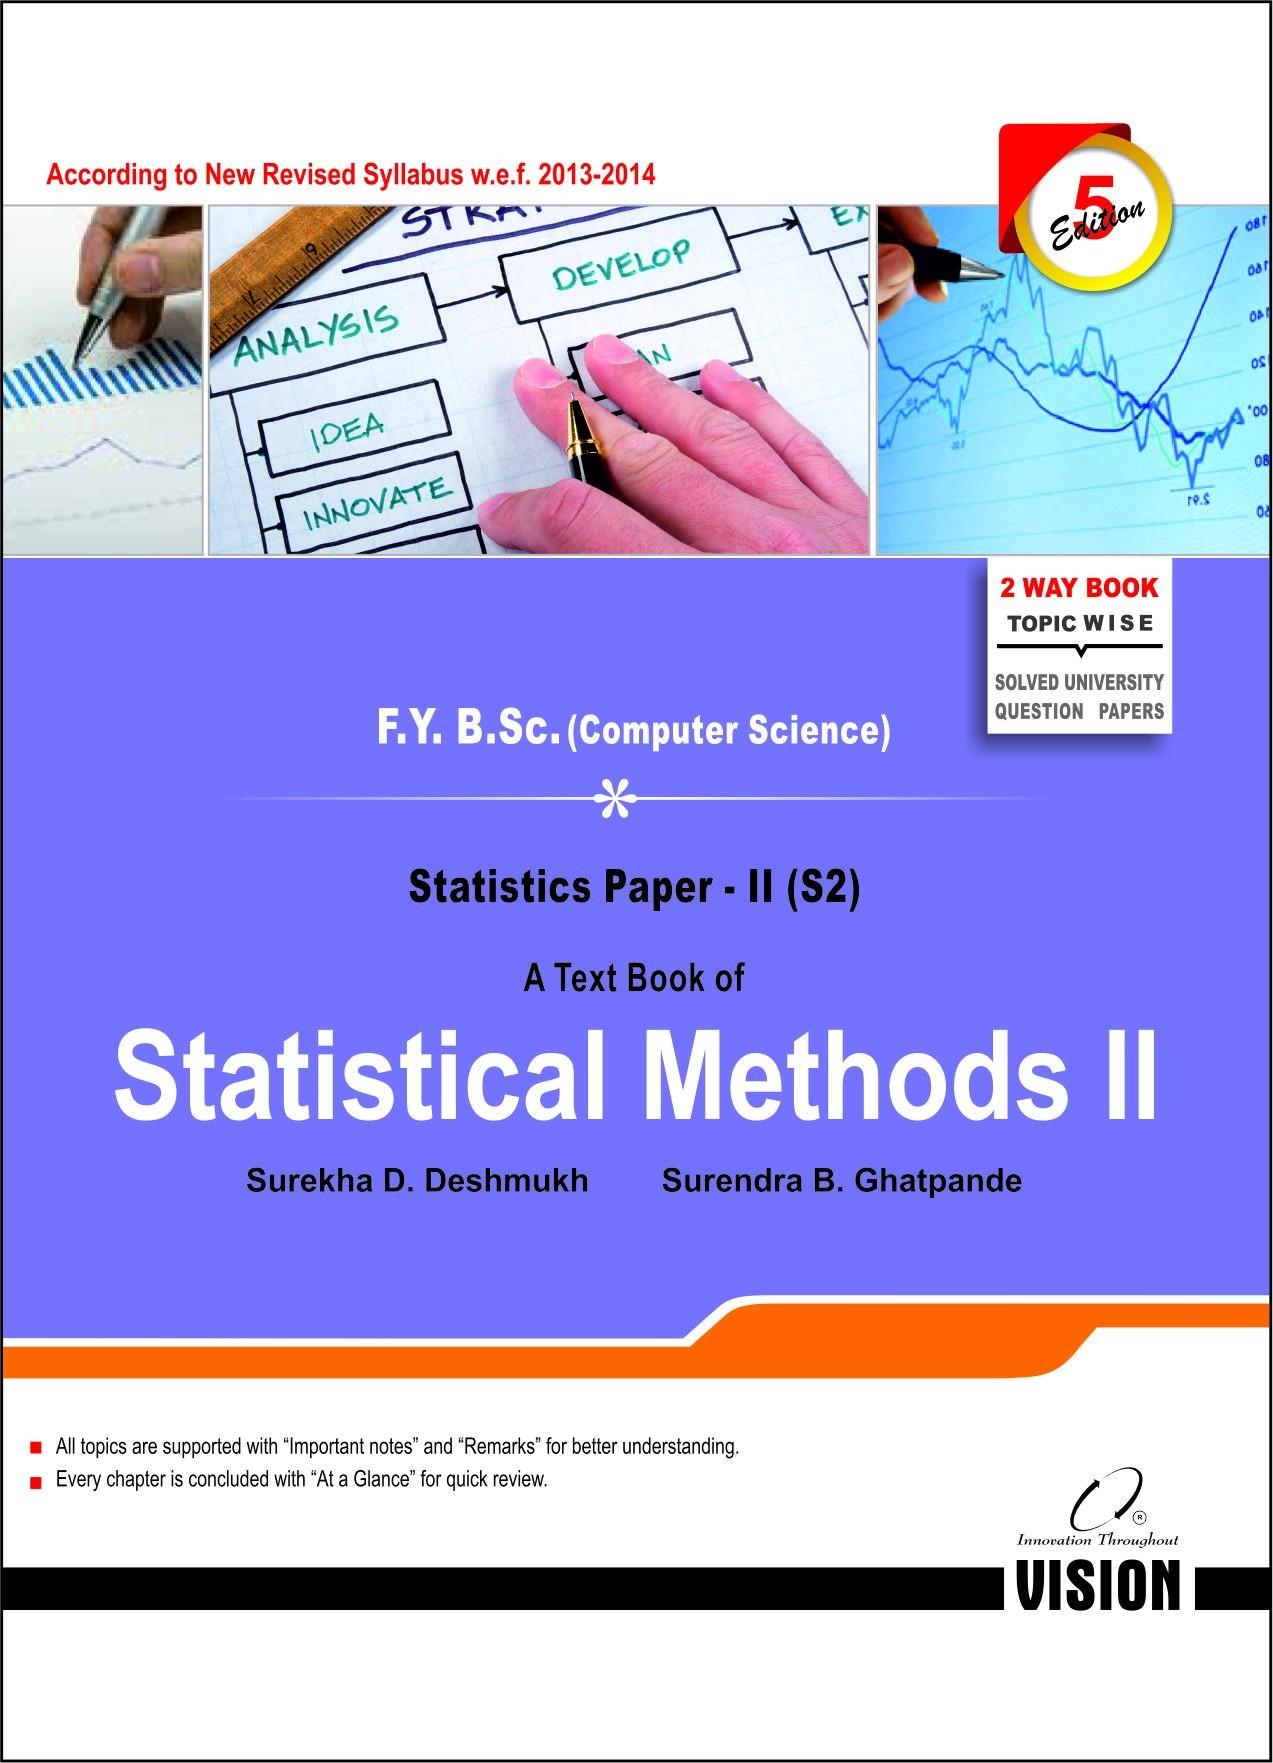 Statistical Methods II - Vision Publications